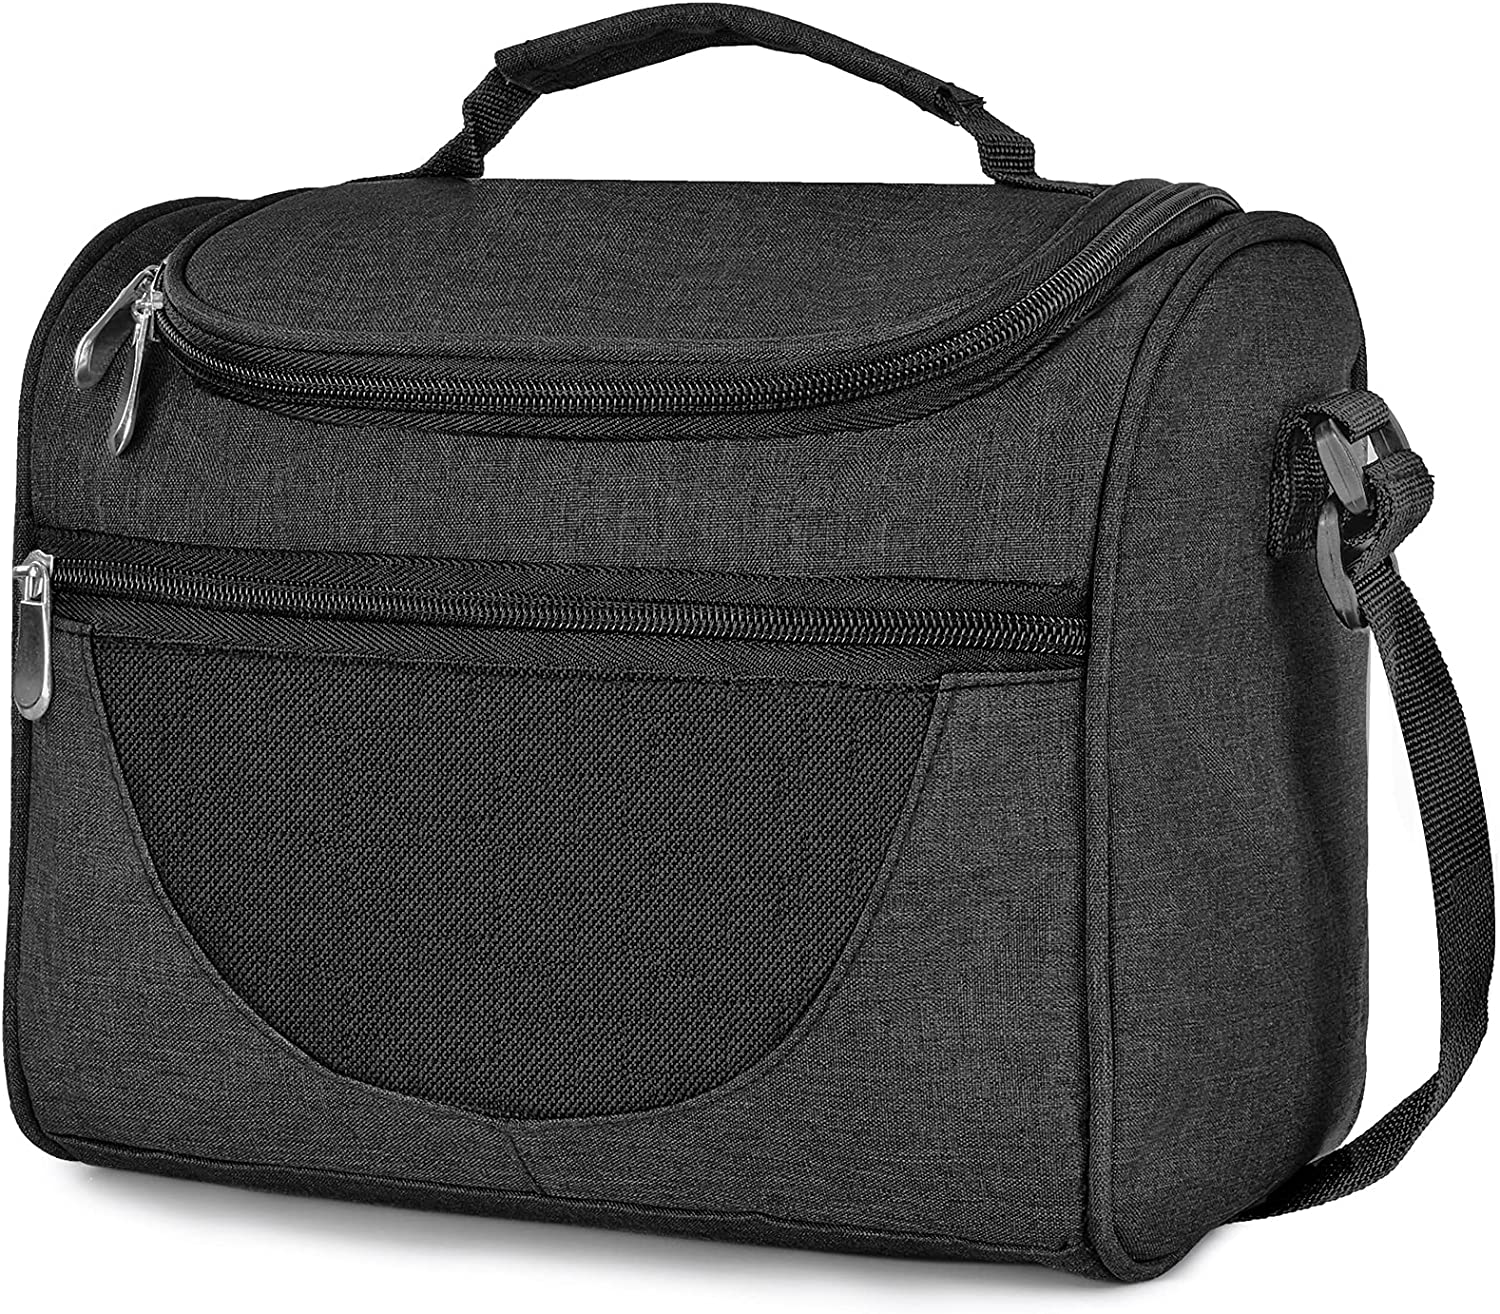 IWNTWY Lunch Bag, Insulated Lunch Box for Men Women Kids Boys Girls, Reusable Leakproof Lunch Cooler with Adjustable Shoulder Strap and Handle for Office School Beach Picnic (Black)